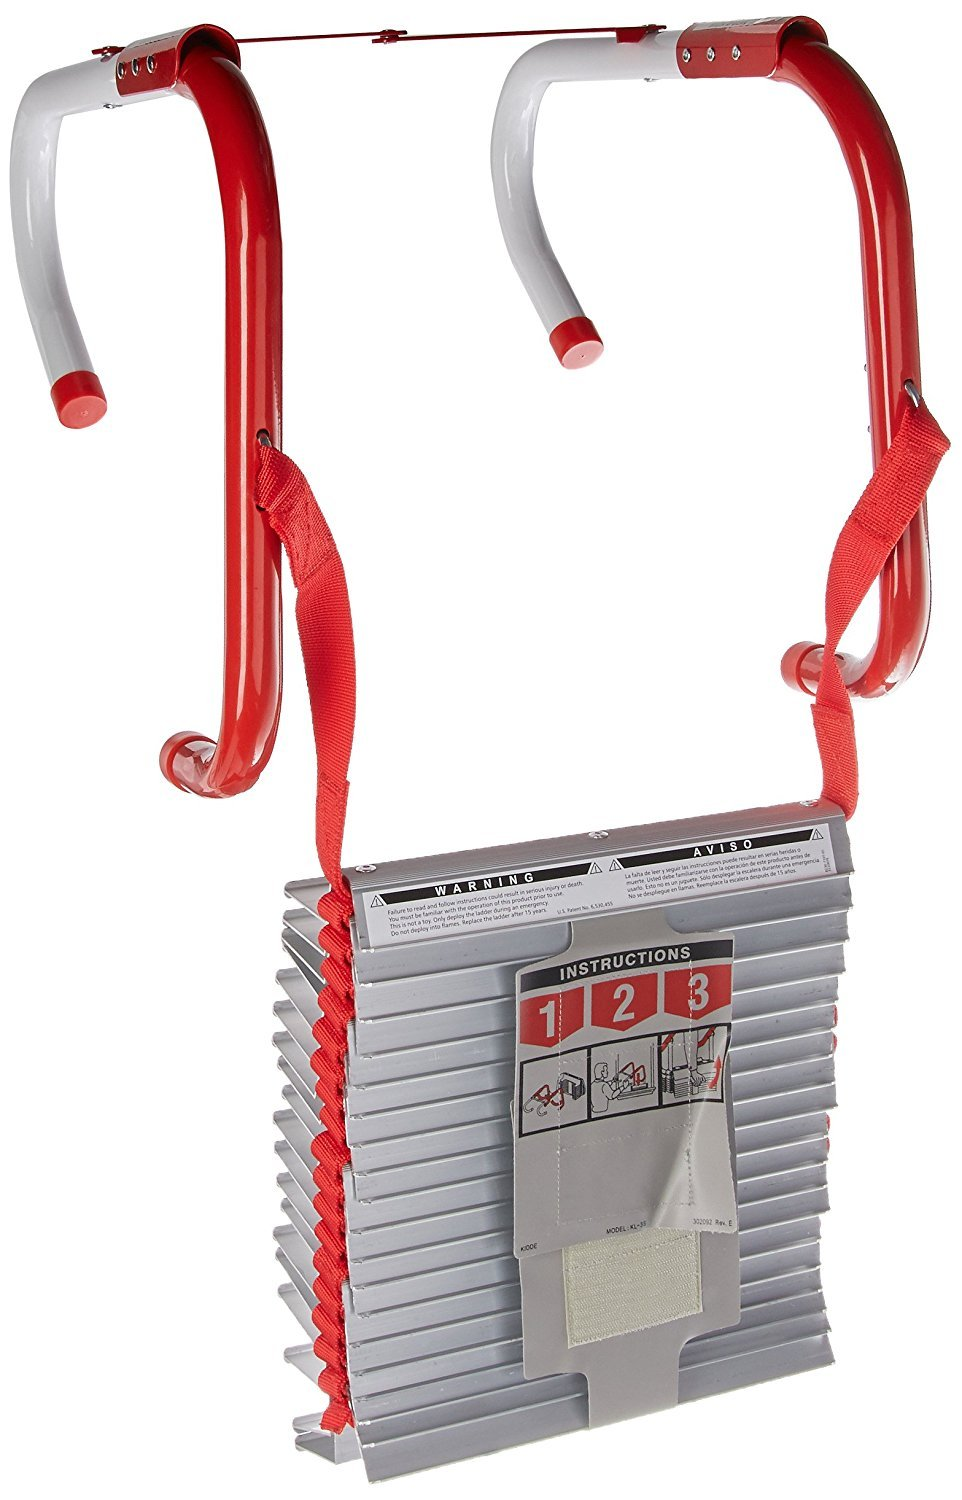 Kidde Three Story Fire Escape Ladder with Anti-Slip Rungs | 25 Foot | Model # KL-2S by Kidde